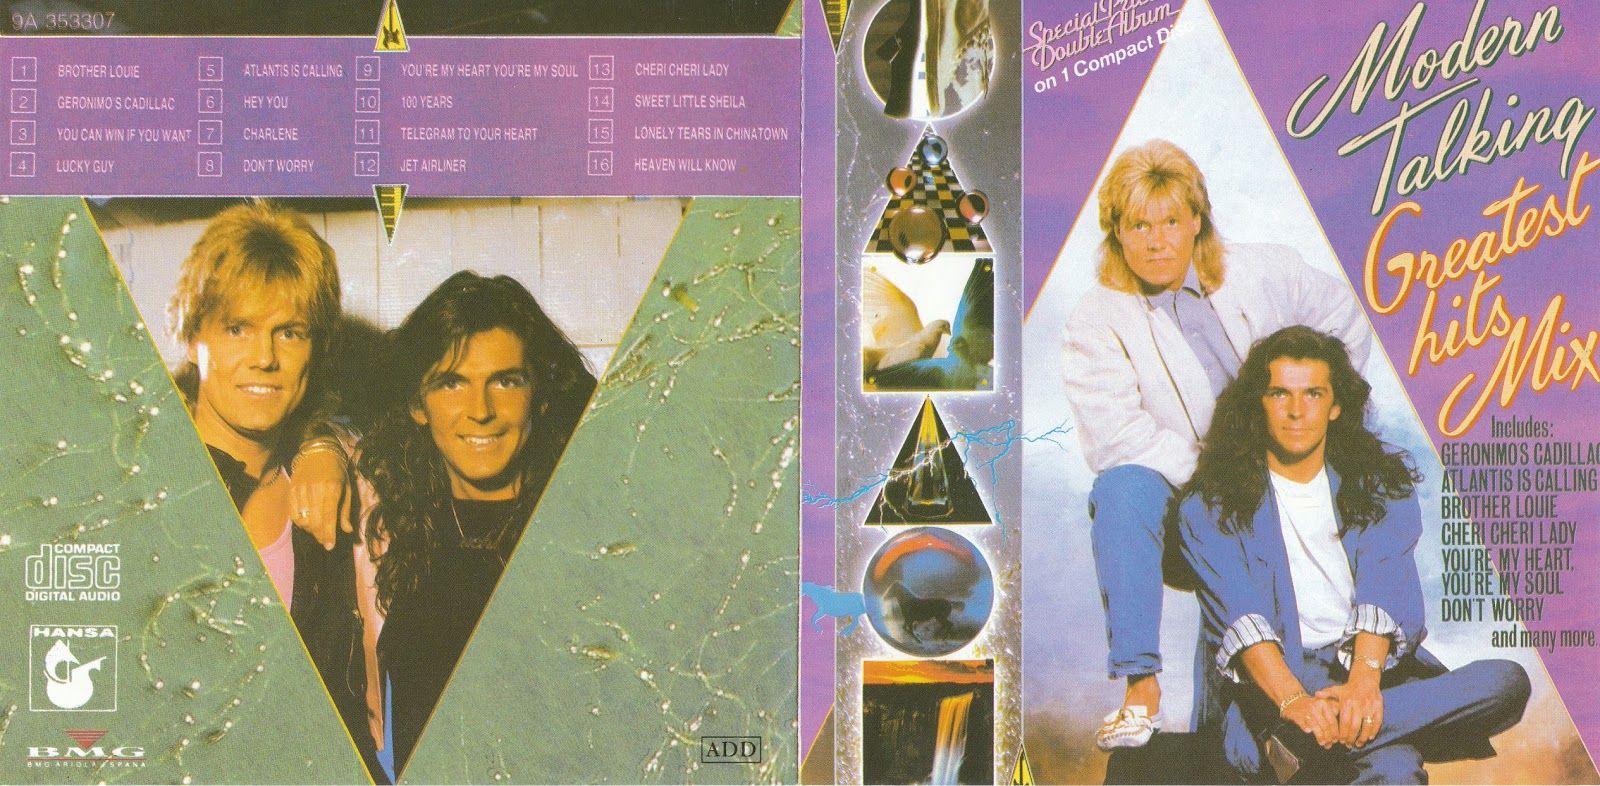 udio music classic modern talking greatest hits mix. Black Bedroom Furniture Sets. Home Design Ideas